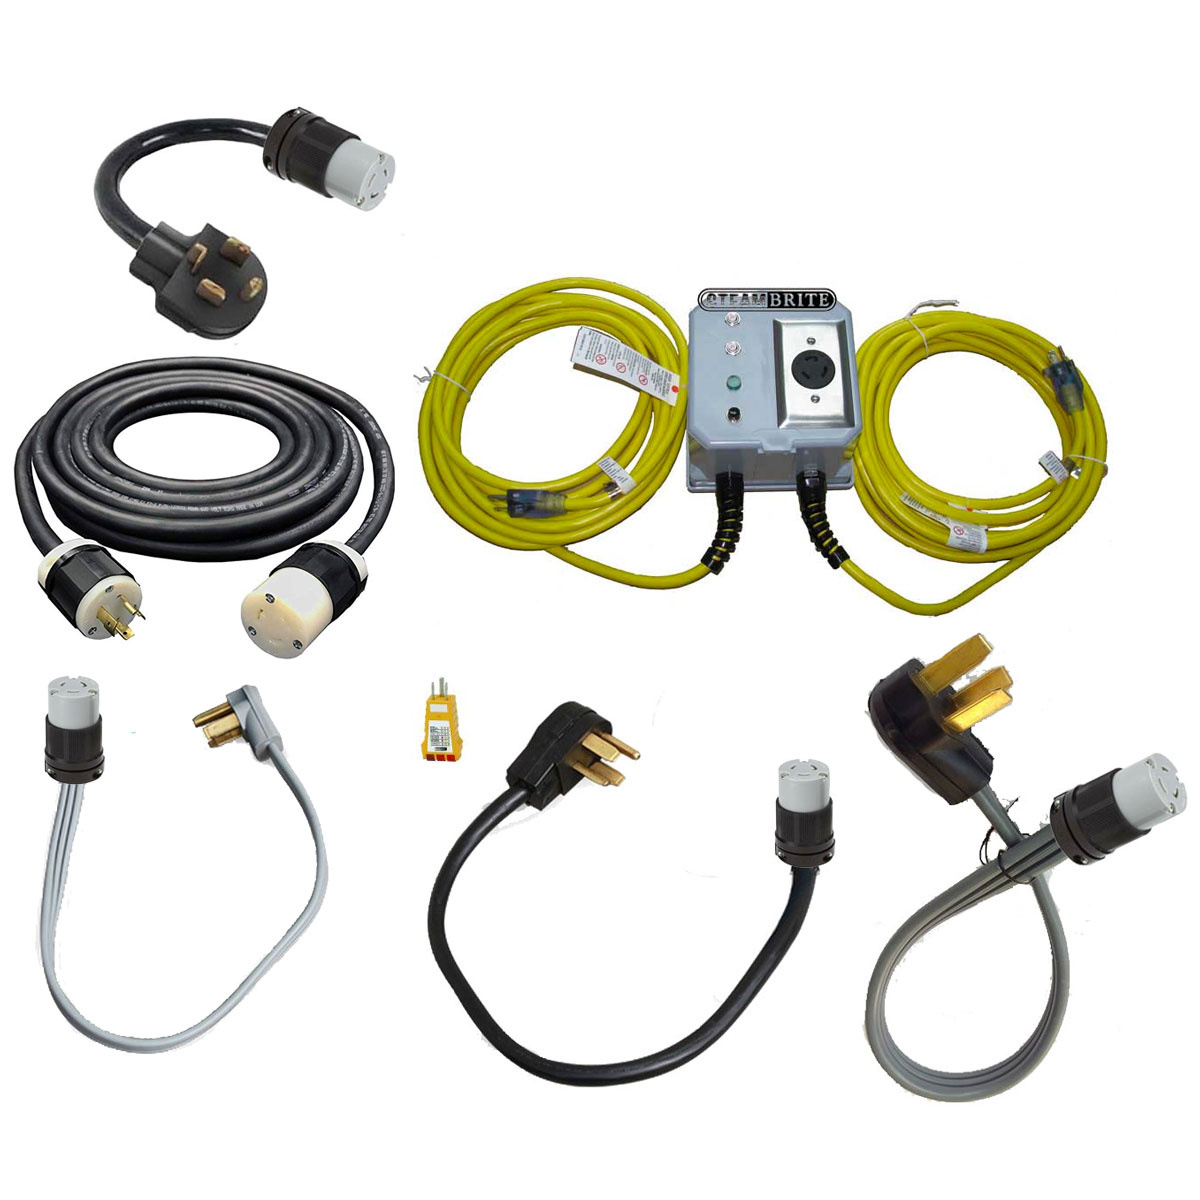 SteamBrite Husqvarna L6-20 Professional Power Supply Kit 20671527 Bundle PG280 PG450 PG530 DM340